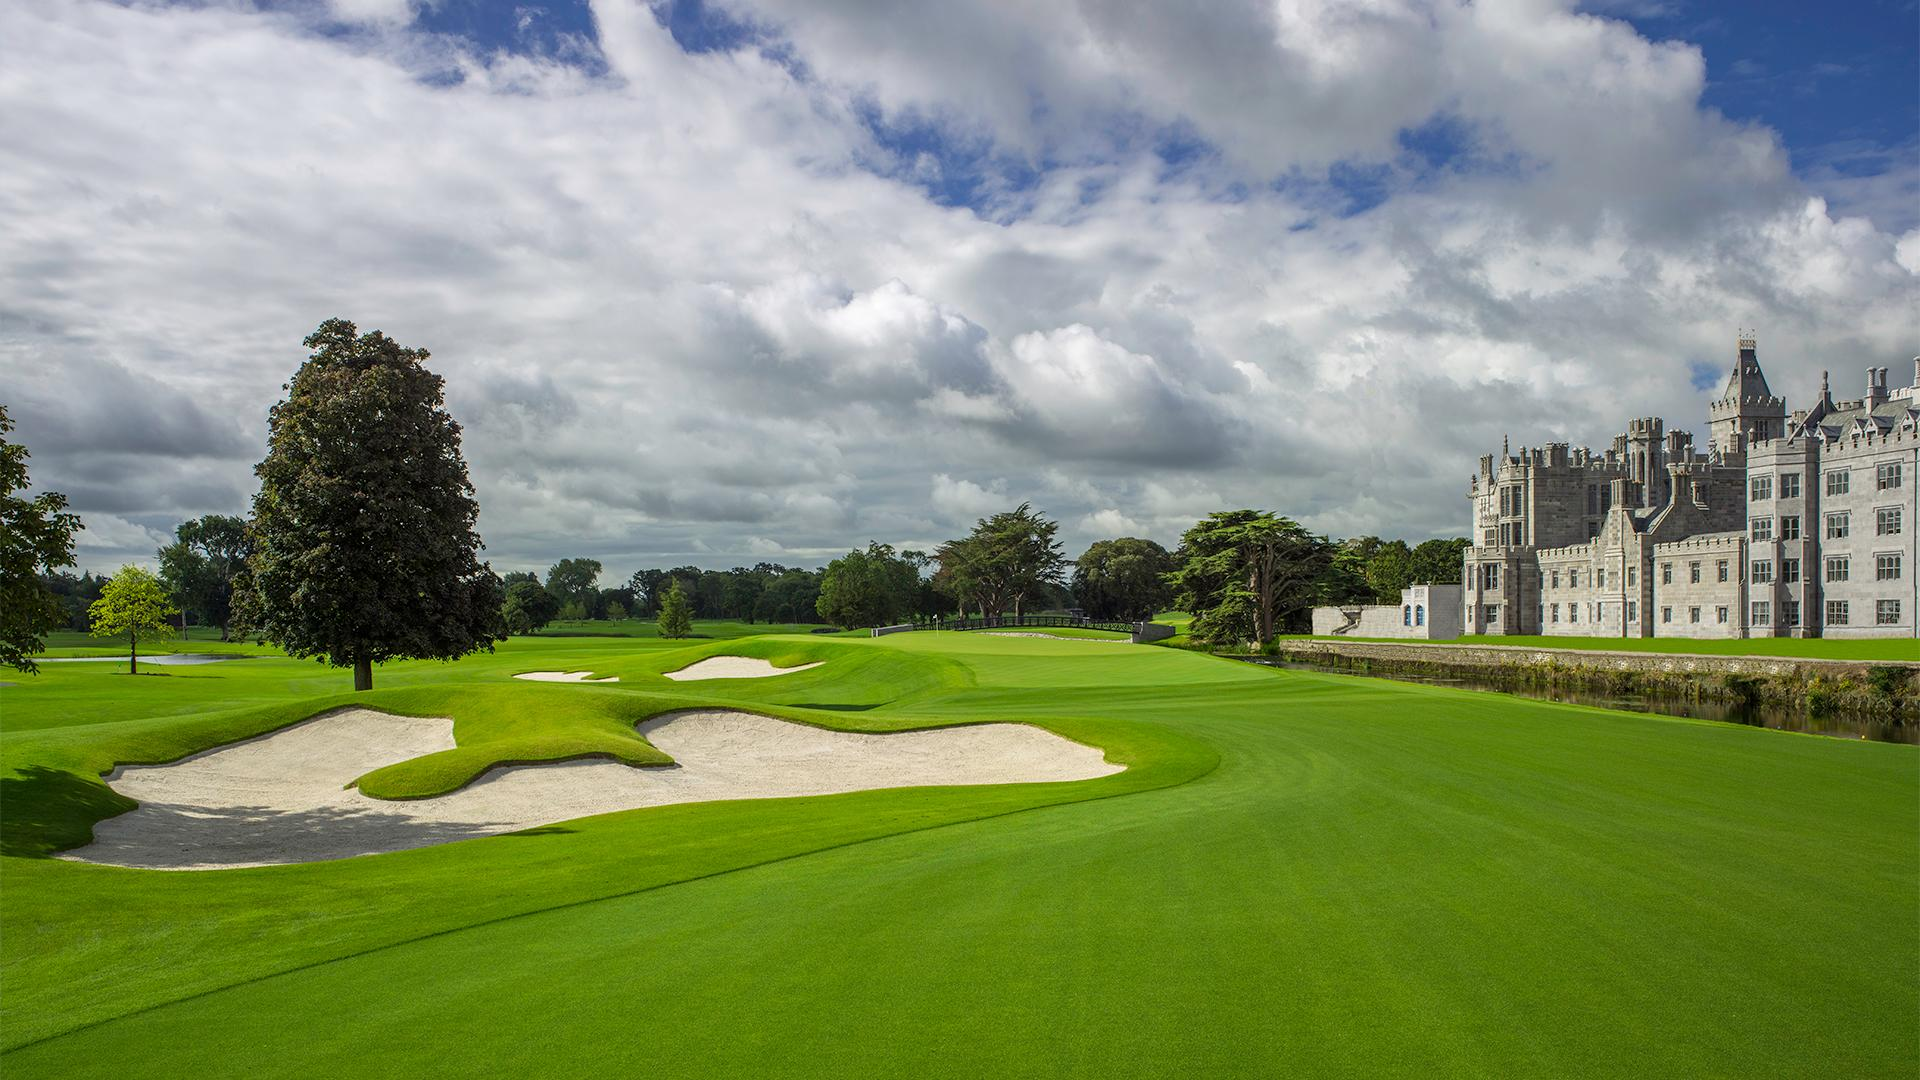 Adare Manor golf course Ryder Cup host 2026